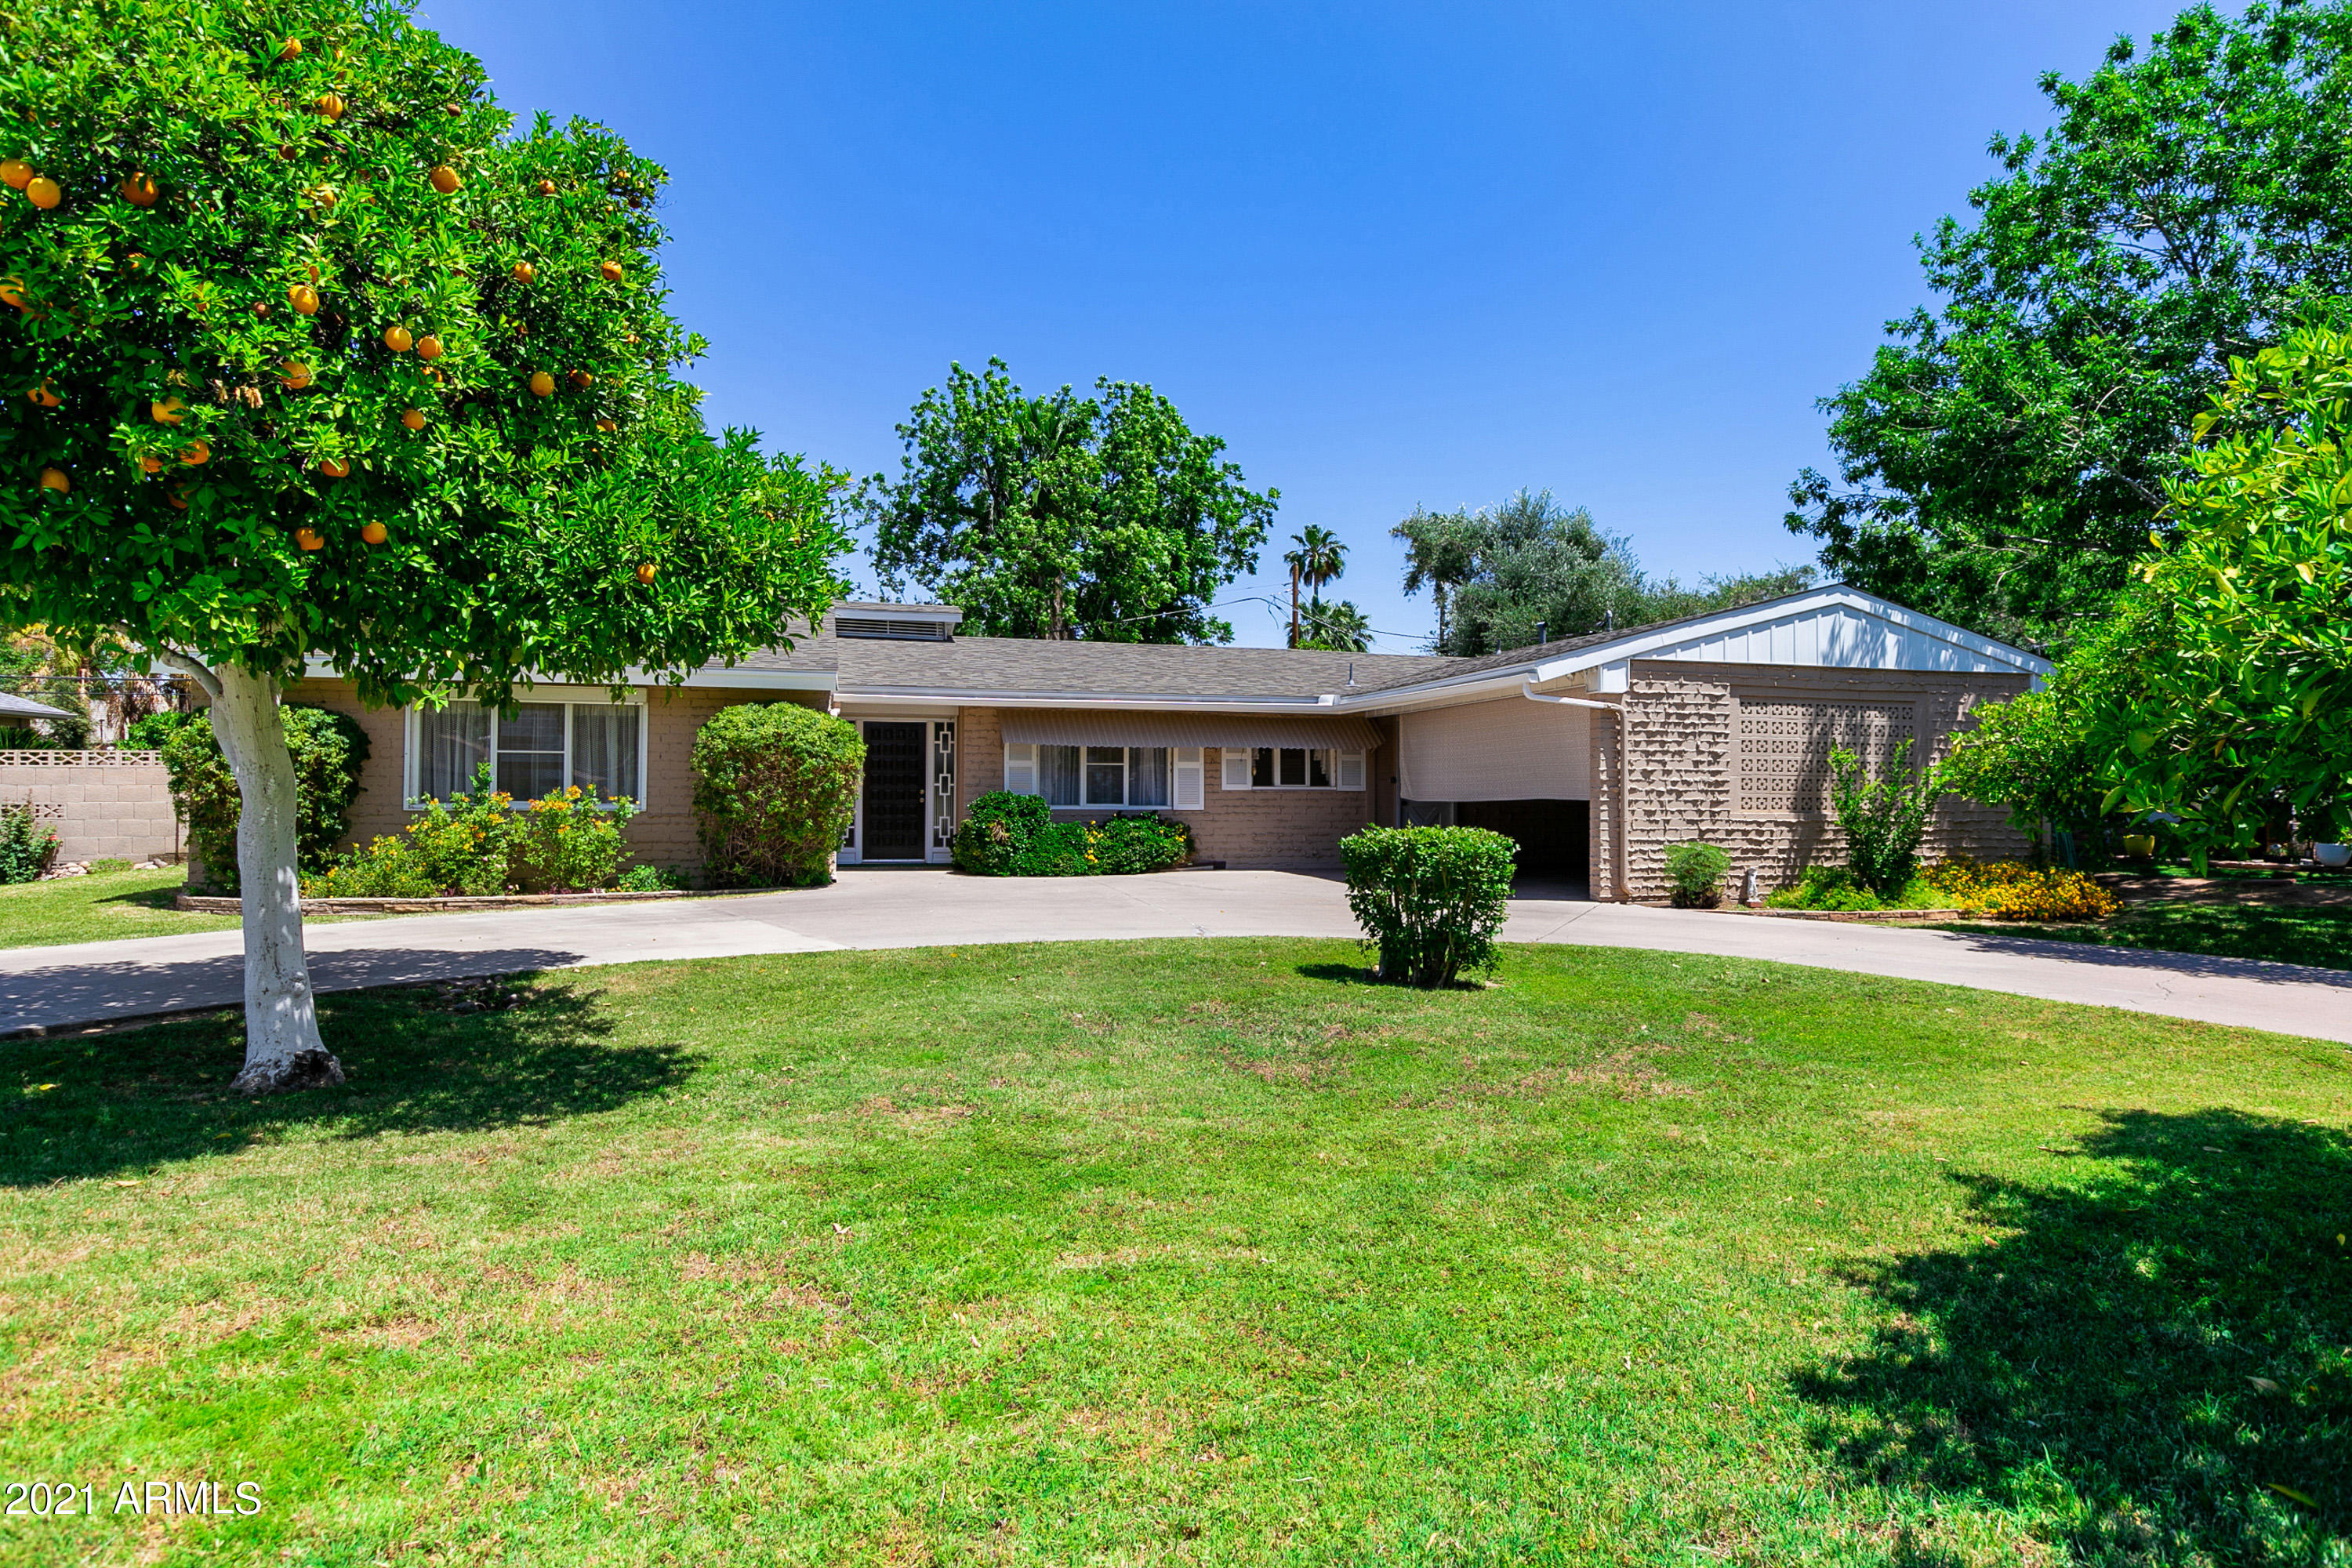 This wonderfully maintained North Central ranch home presents an invaluable opportunity to own a perfectly blank canvas and turn it into the home of your dreams! Even though this home features many of the original finishes, the property has been well taken care of and the pride of ownership is apparent! Sitting on a lush, oversized 11,000+ lot with mature fruit trees and green grass, this brick charmer also offers a spacious carport, a half circle driveway, an enclosed covered porch, large bedrooms, and open living areas. Enjoy easy access to the canal, AZ-51 freeway, and a short distance to several local dining favorites.  Stop by and take a look today!